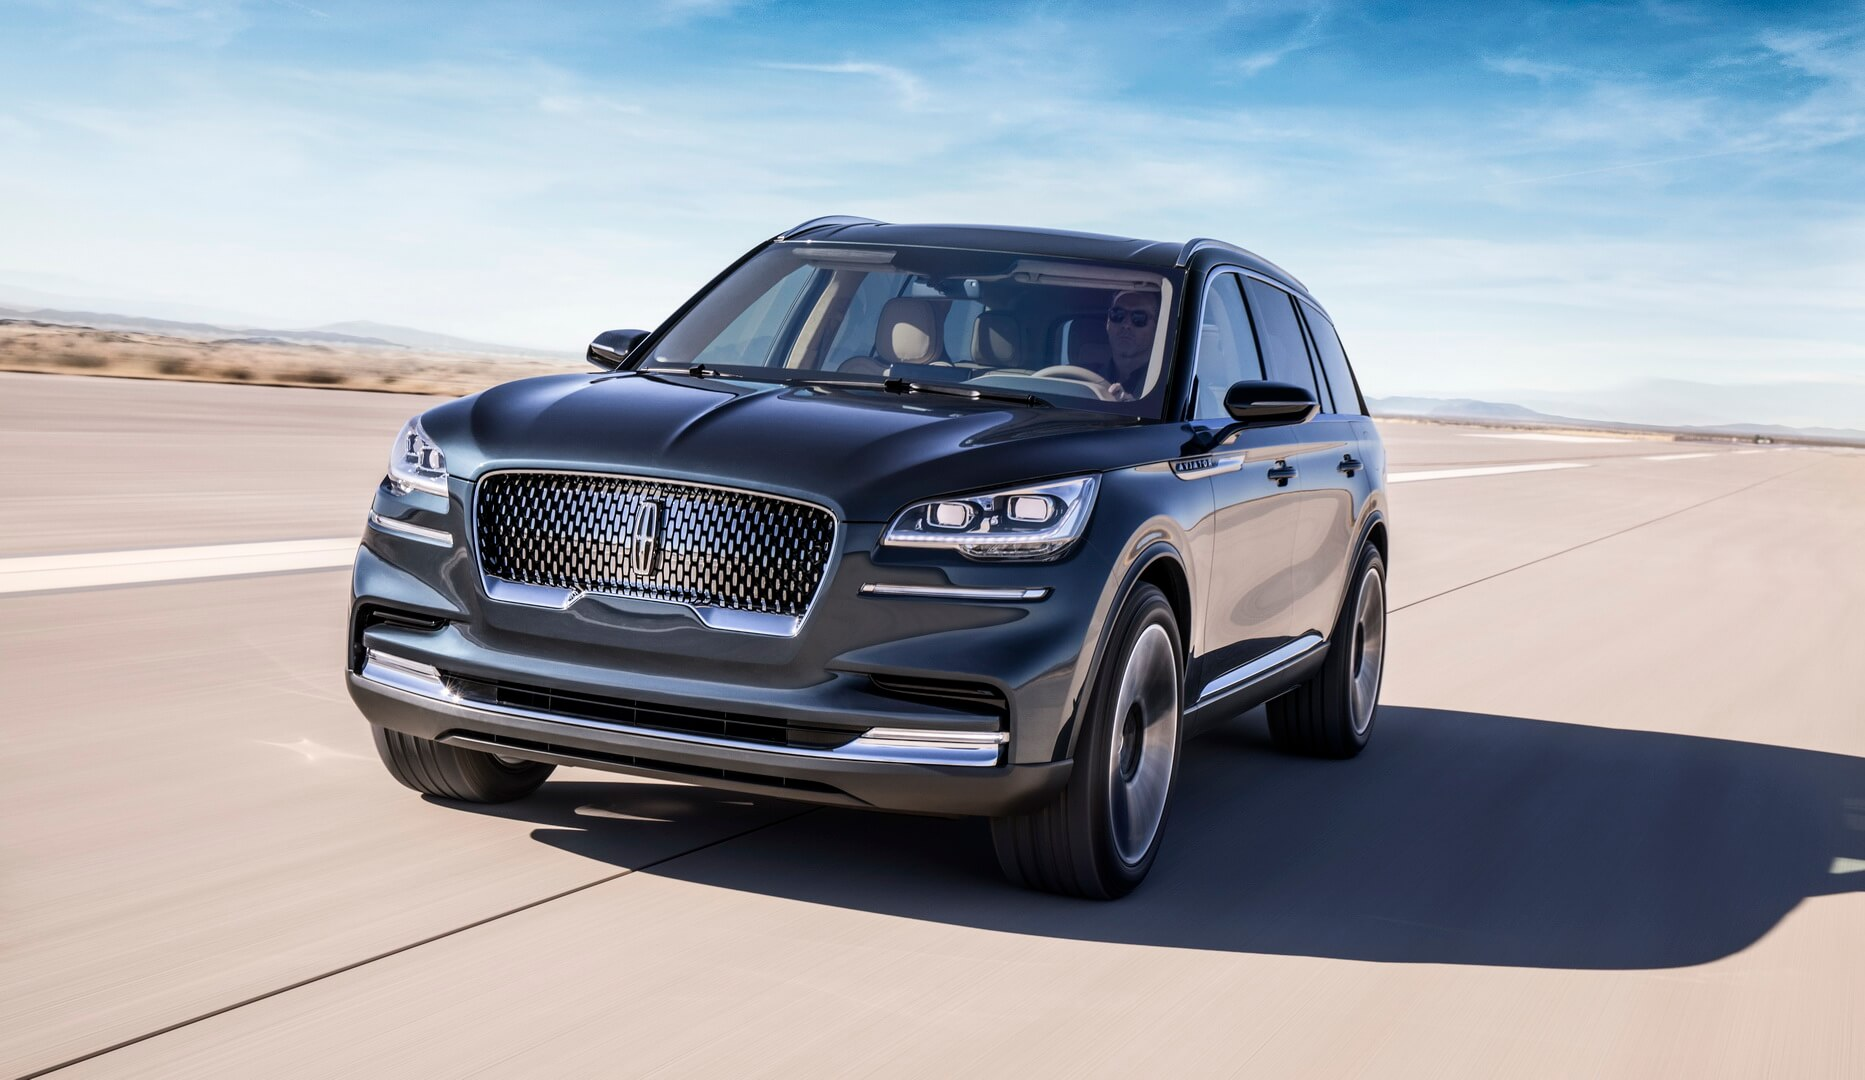 Плагин-гибрид Lincoln Aviator